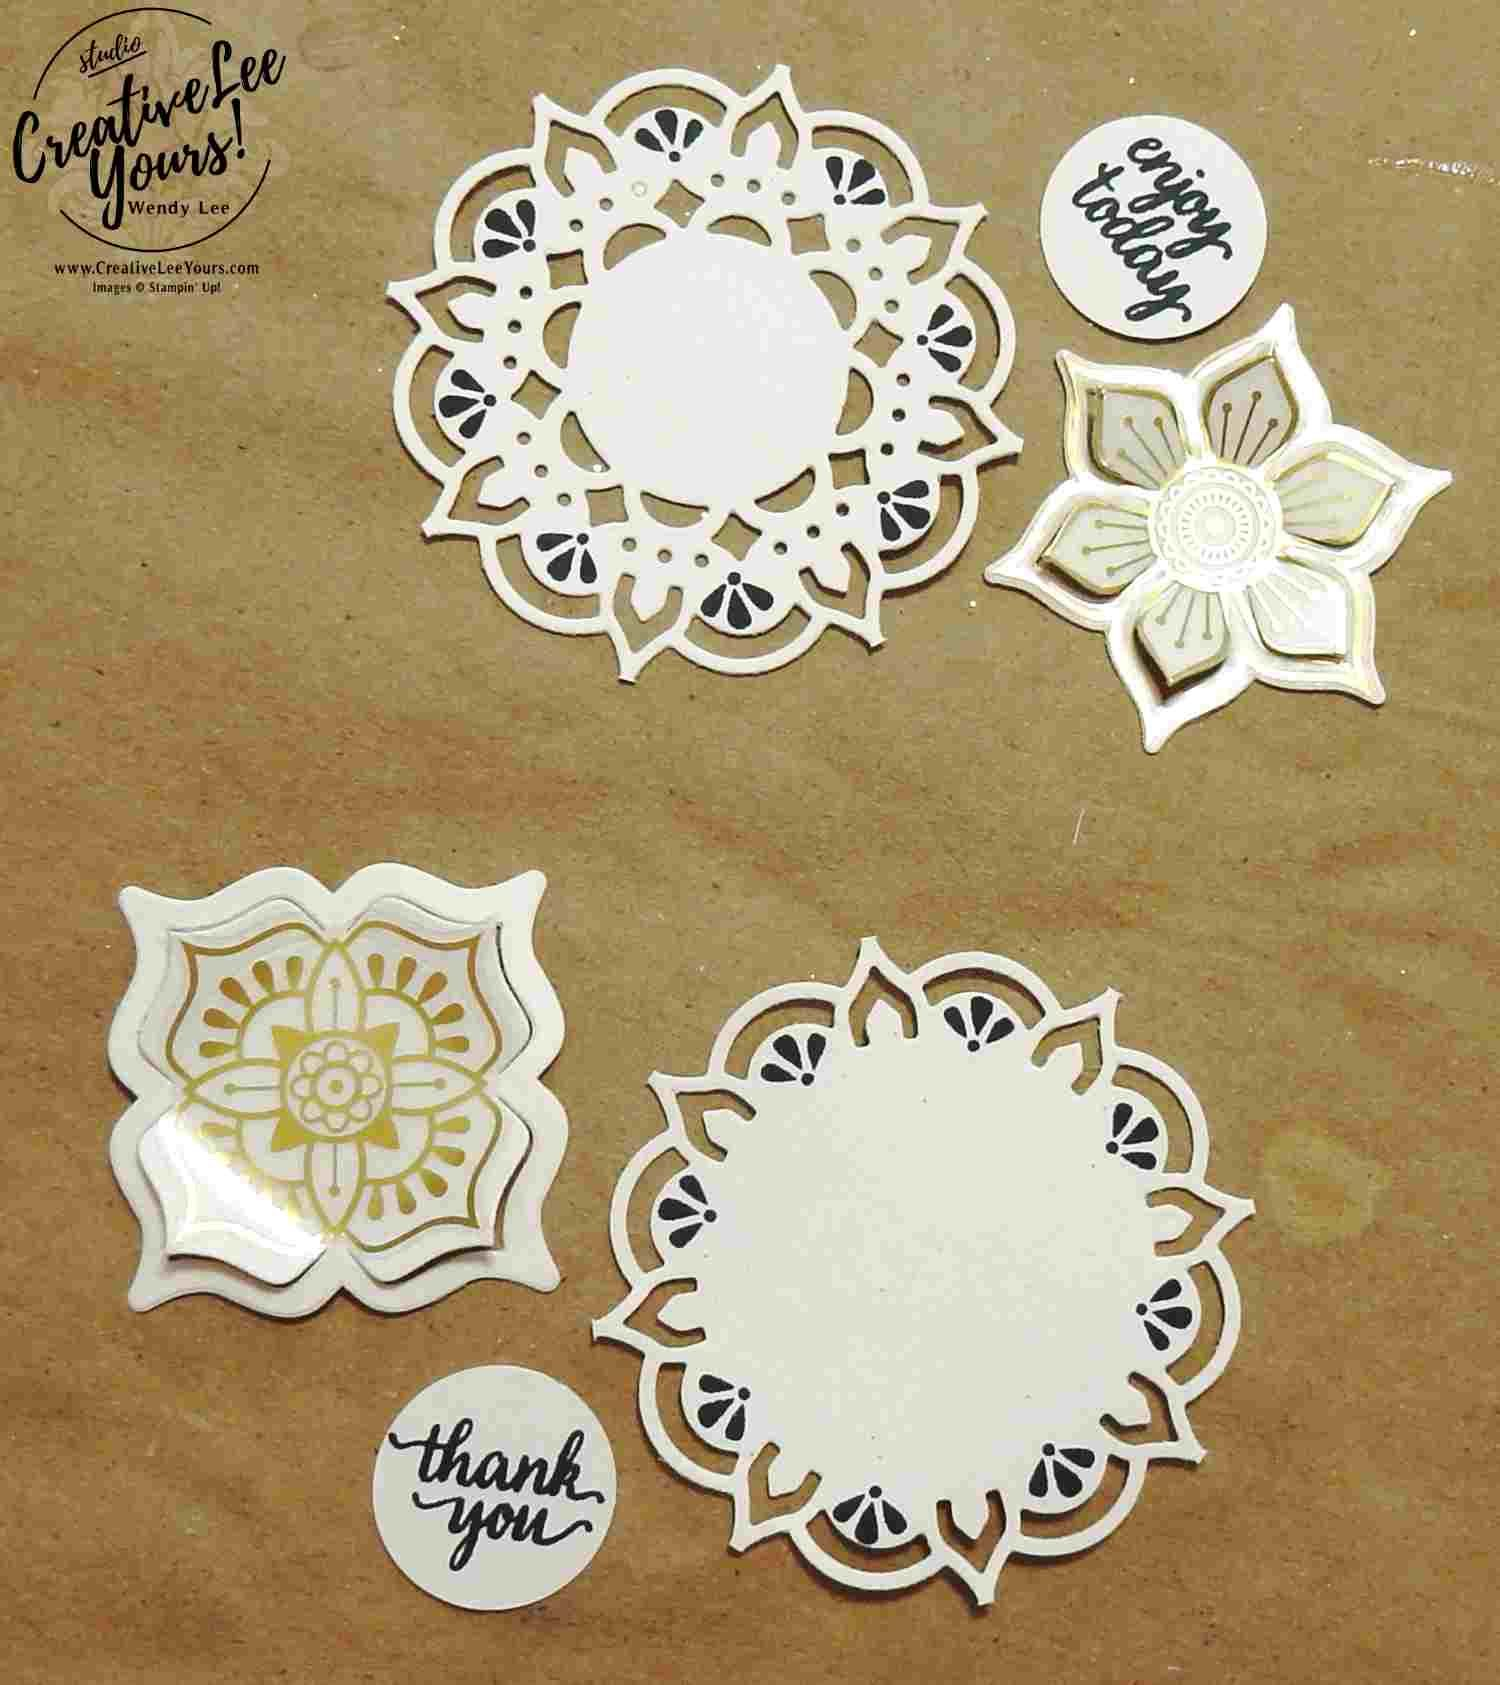 my cut petunia congratulations says arabesque fussy die altenew just sweet from stamp i used medallion around simon the